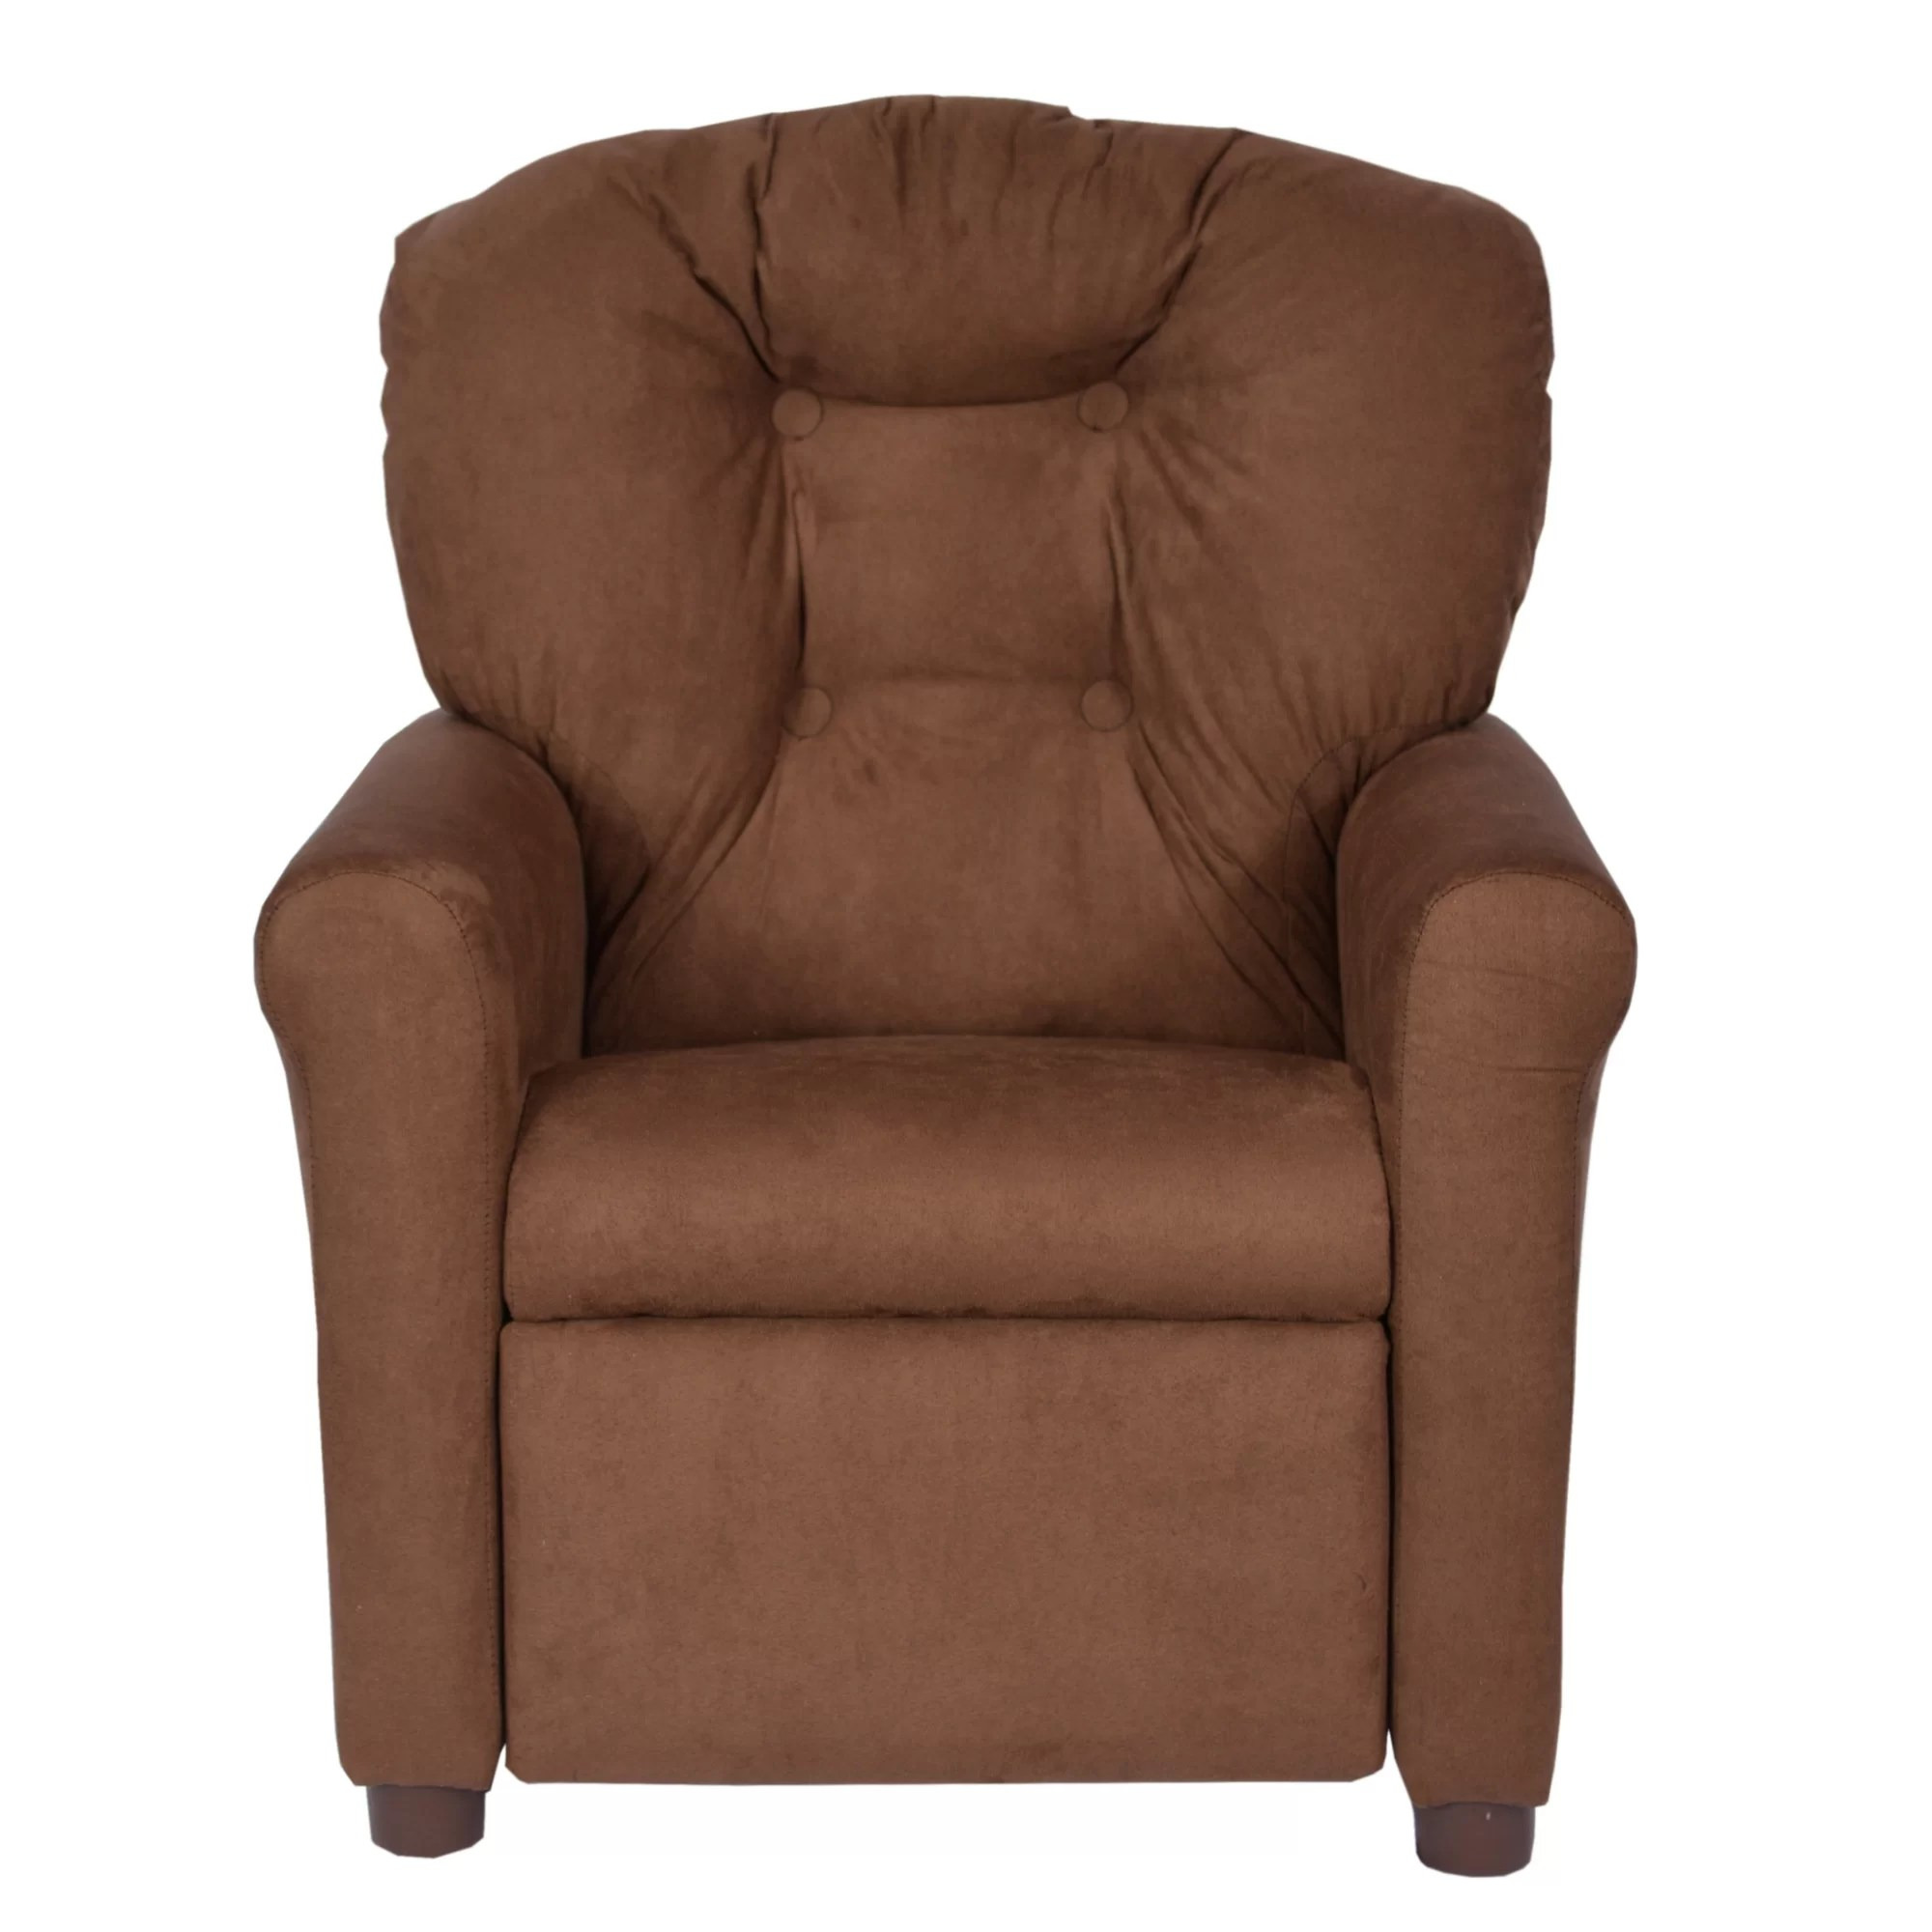 Kids Reclining Chair Crew Furniture Juvenile Kids Recliner Ebay